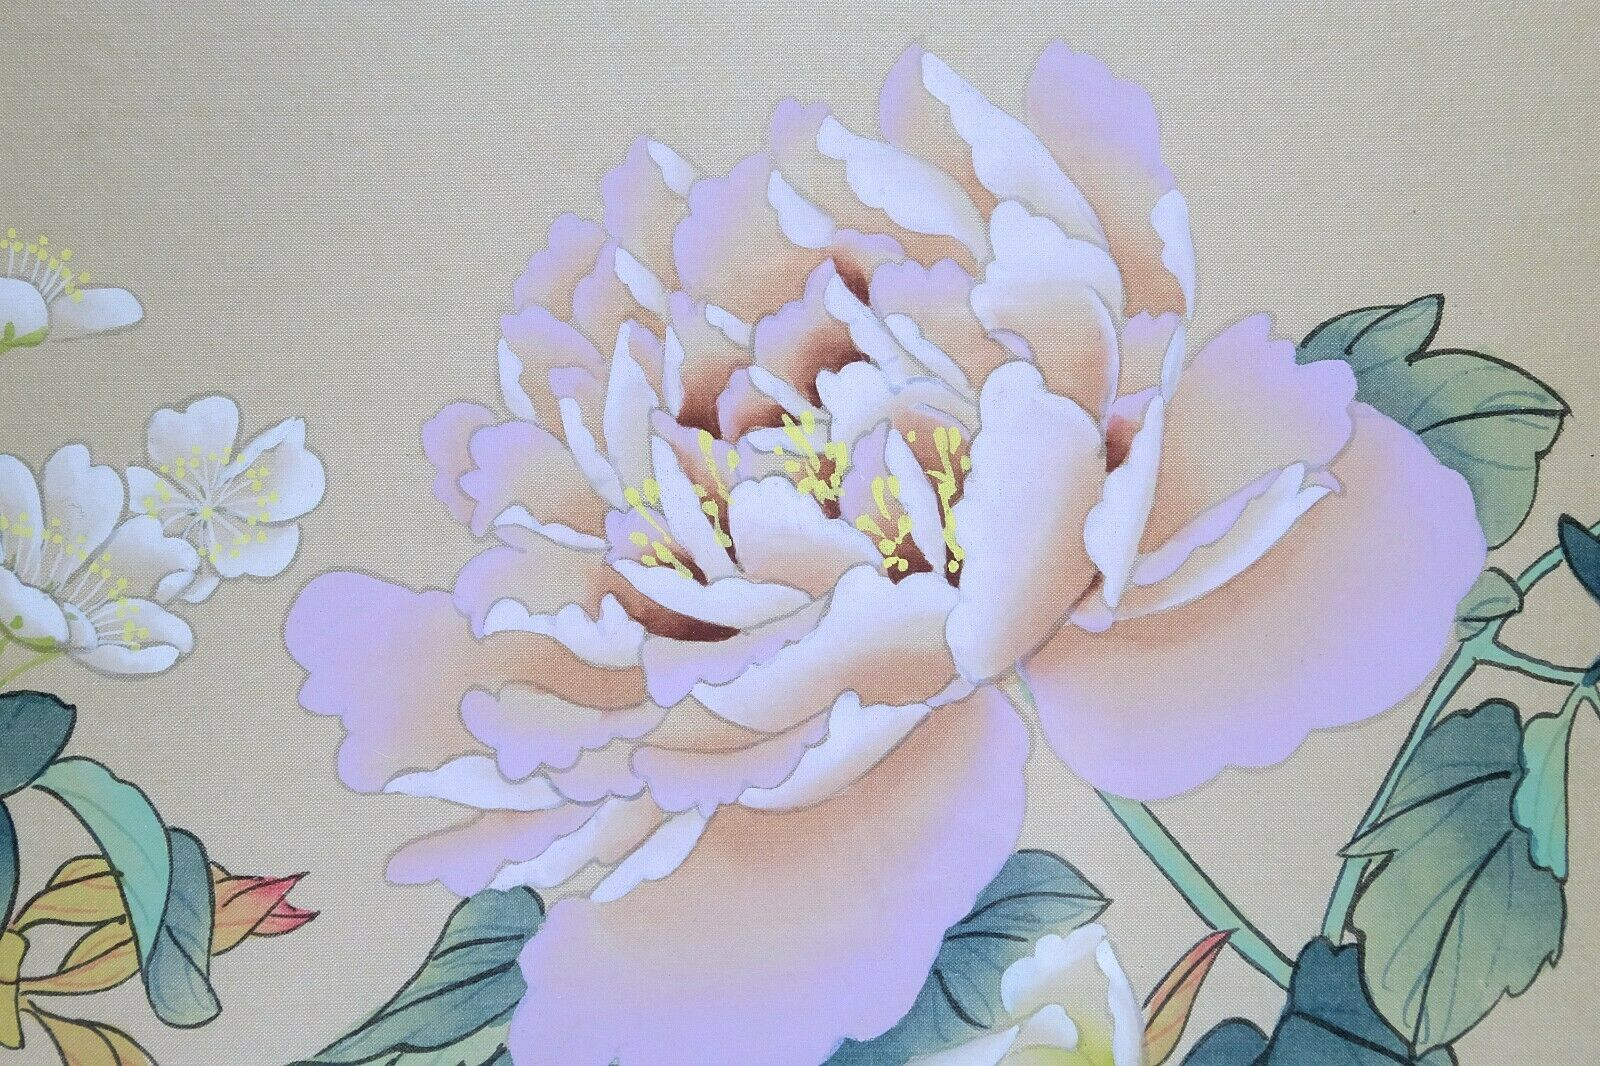 Vintage Oriental Watercolor Painting On Silk Paper, Blue Bird And Peony Flower  - $85.00